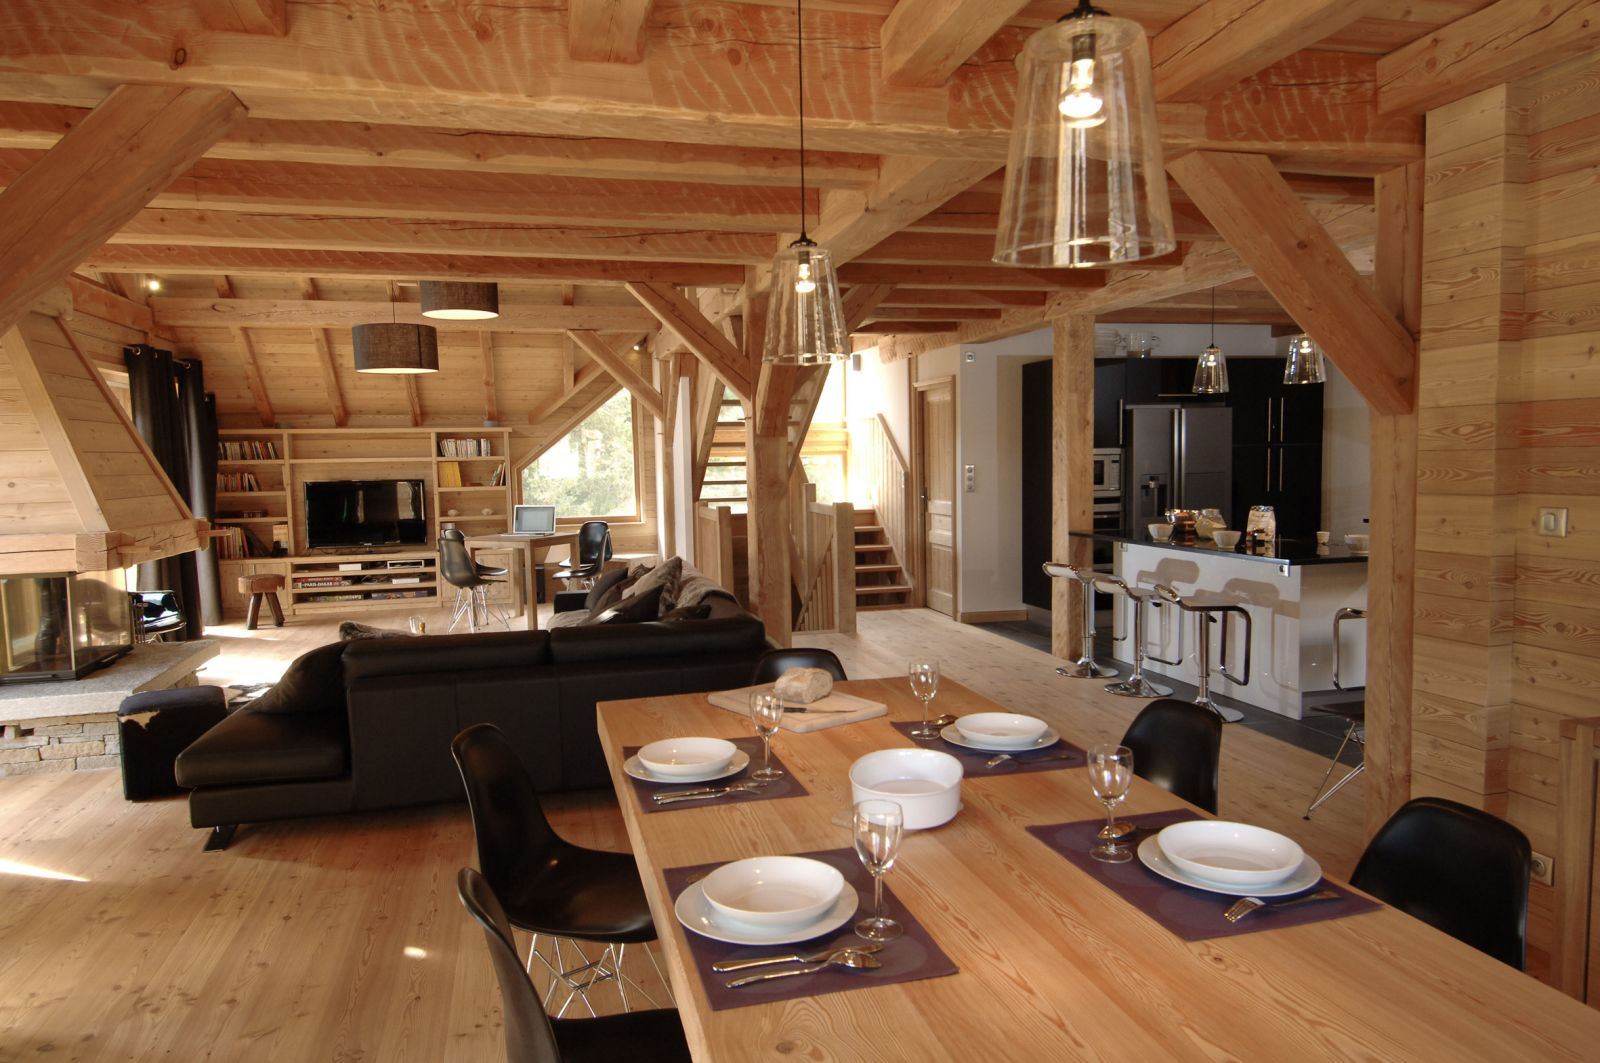 location chalet luxe serre chevalier pied des pistes spa services. Black Bedroom Furniture Sets. Home Design Ideas